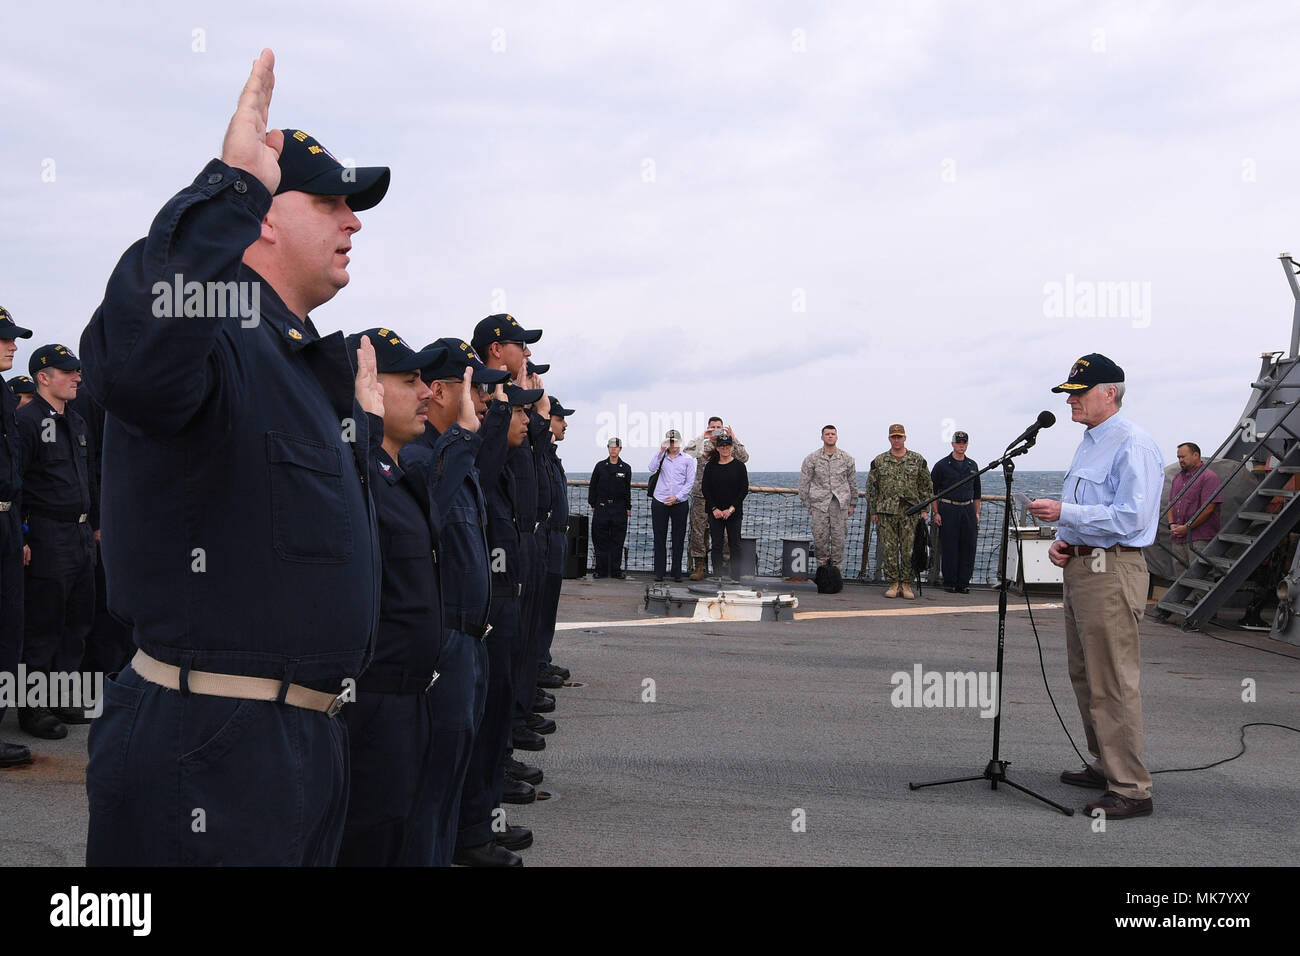 ARABIAN GULF (Nov. 23, 2017) Secretary of the Navy Richard V. Spencer reenlists eight Sailors assigned to the Arleigh Burke-class guided-missile destroyer USS Hopper (DDG 70) during a visit to the ship on Thanksgiving Day. Hopper is deployed to the U.S. 5th Fleet area of operations in support of maritime security operations to reassure allies and partners and preserve the freedom of navigation and the free flow of commerce in the region. (U.S. Navy photo by Mass Communication Specialist 2nd Class Kristina Young/Released) - Stock Image